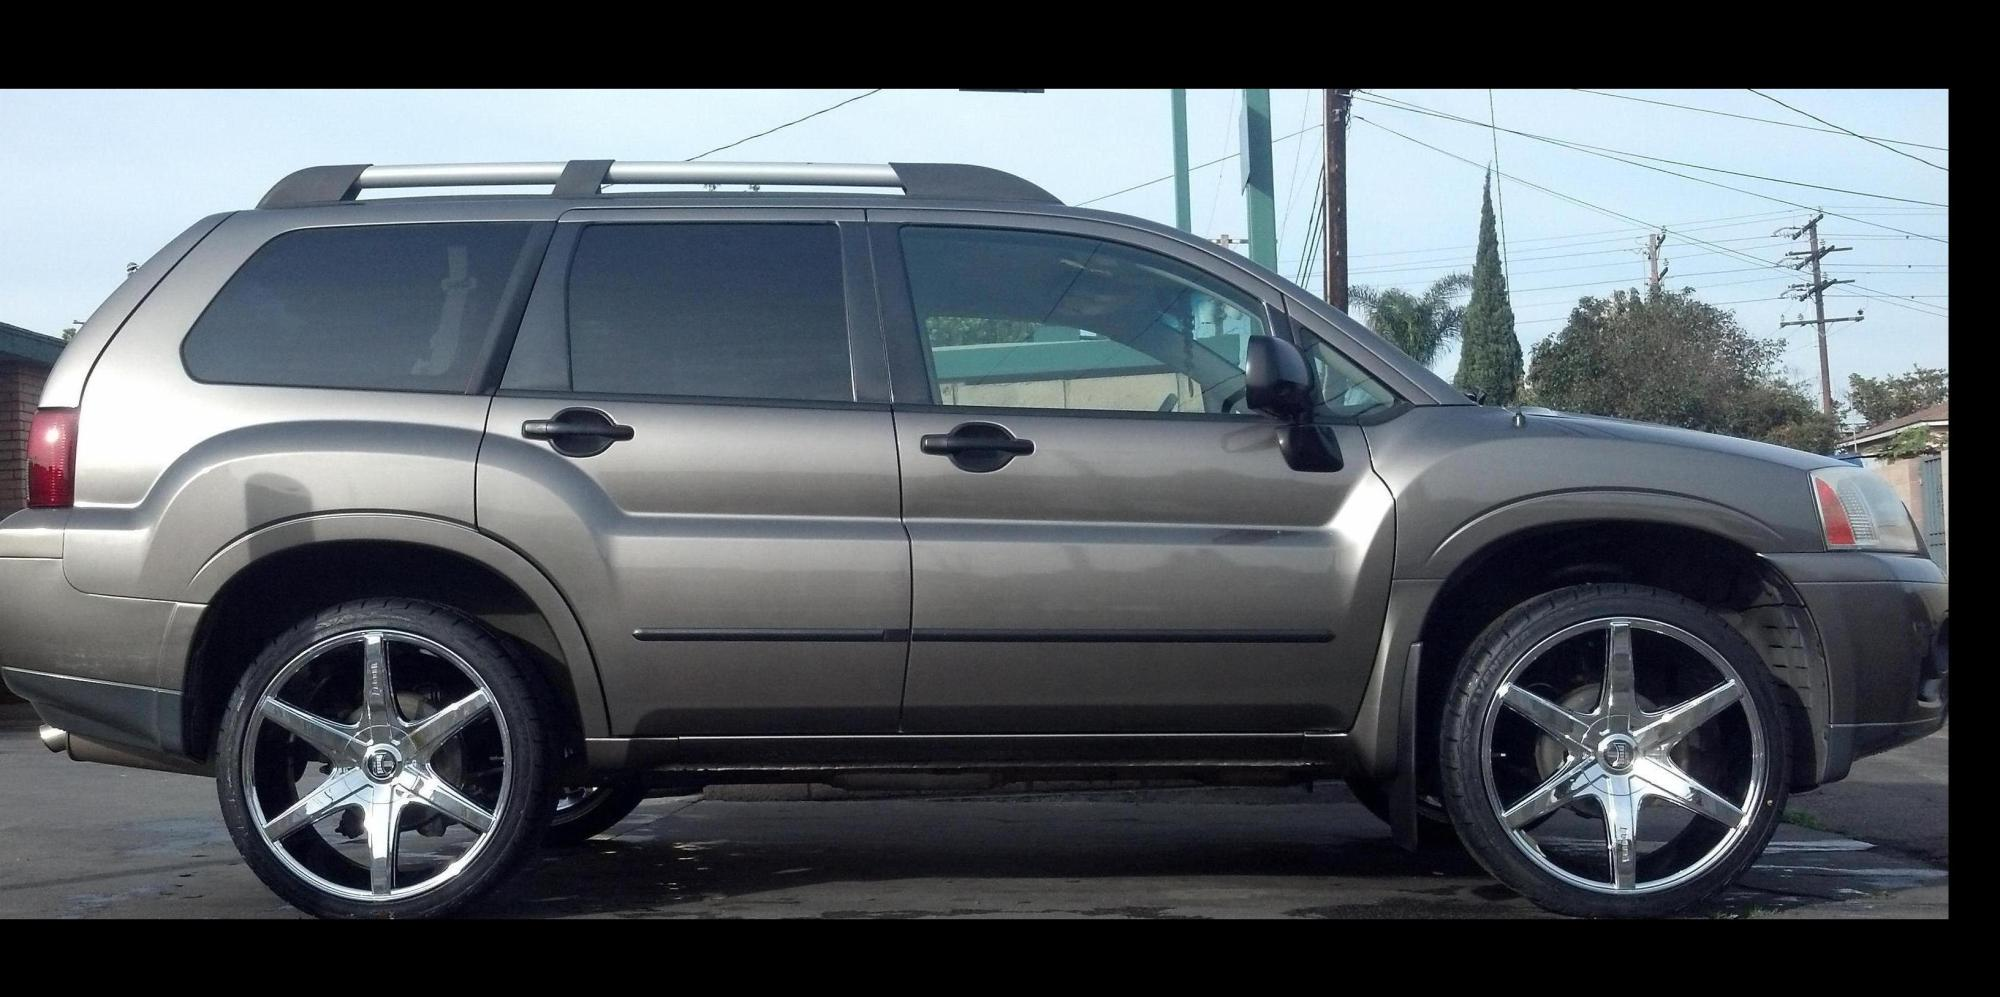 hight resolution of beach bum 2006 mitsubishi endeavor